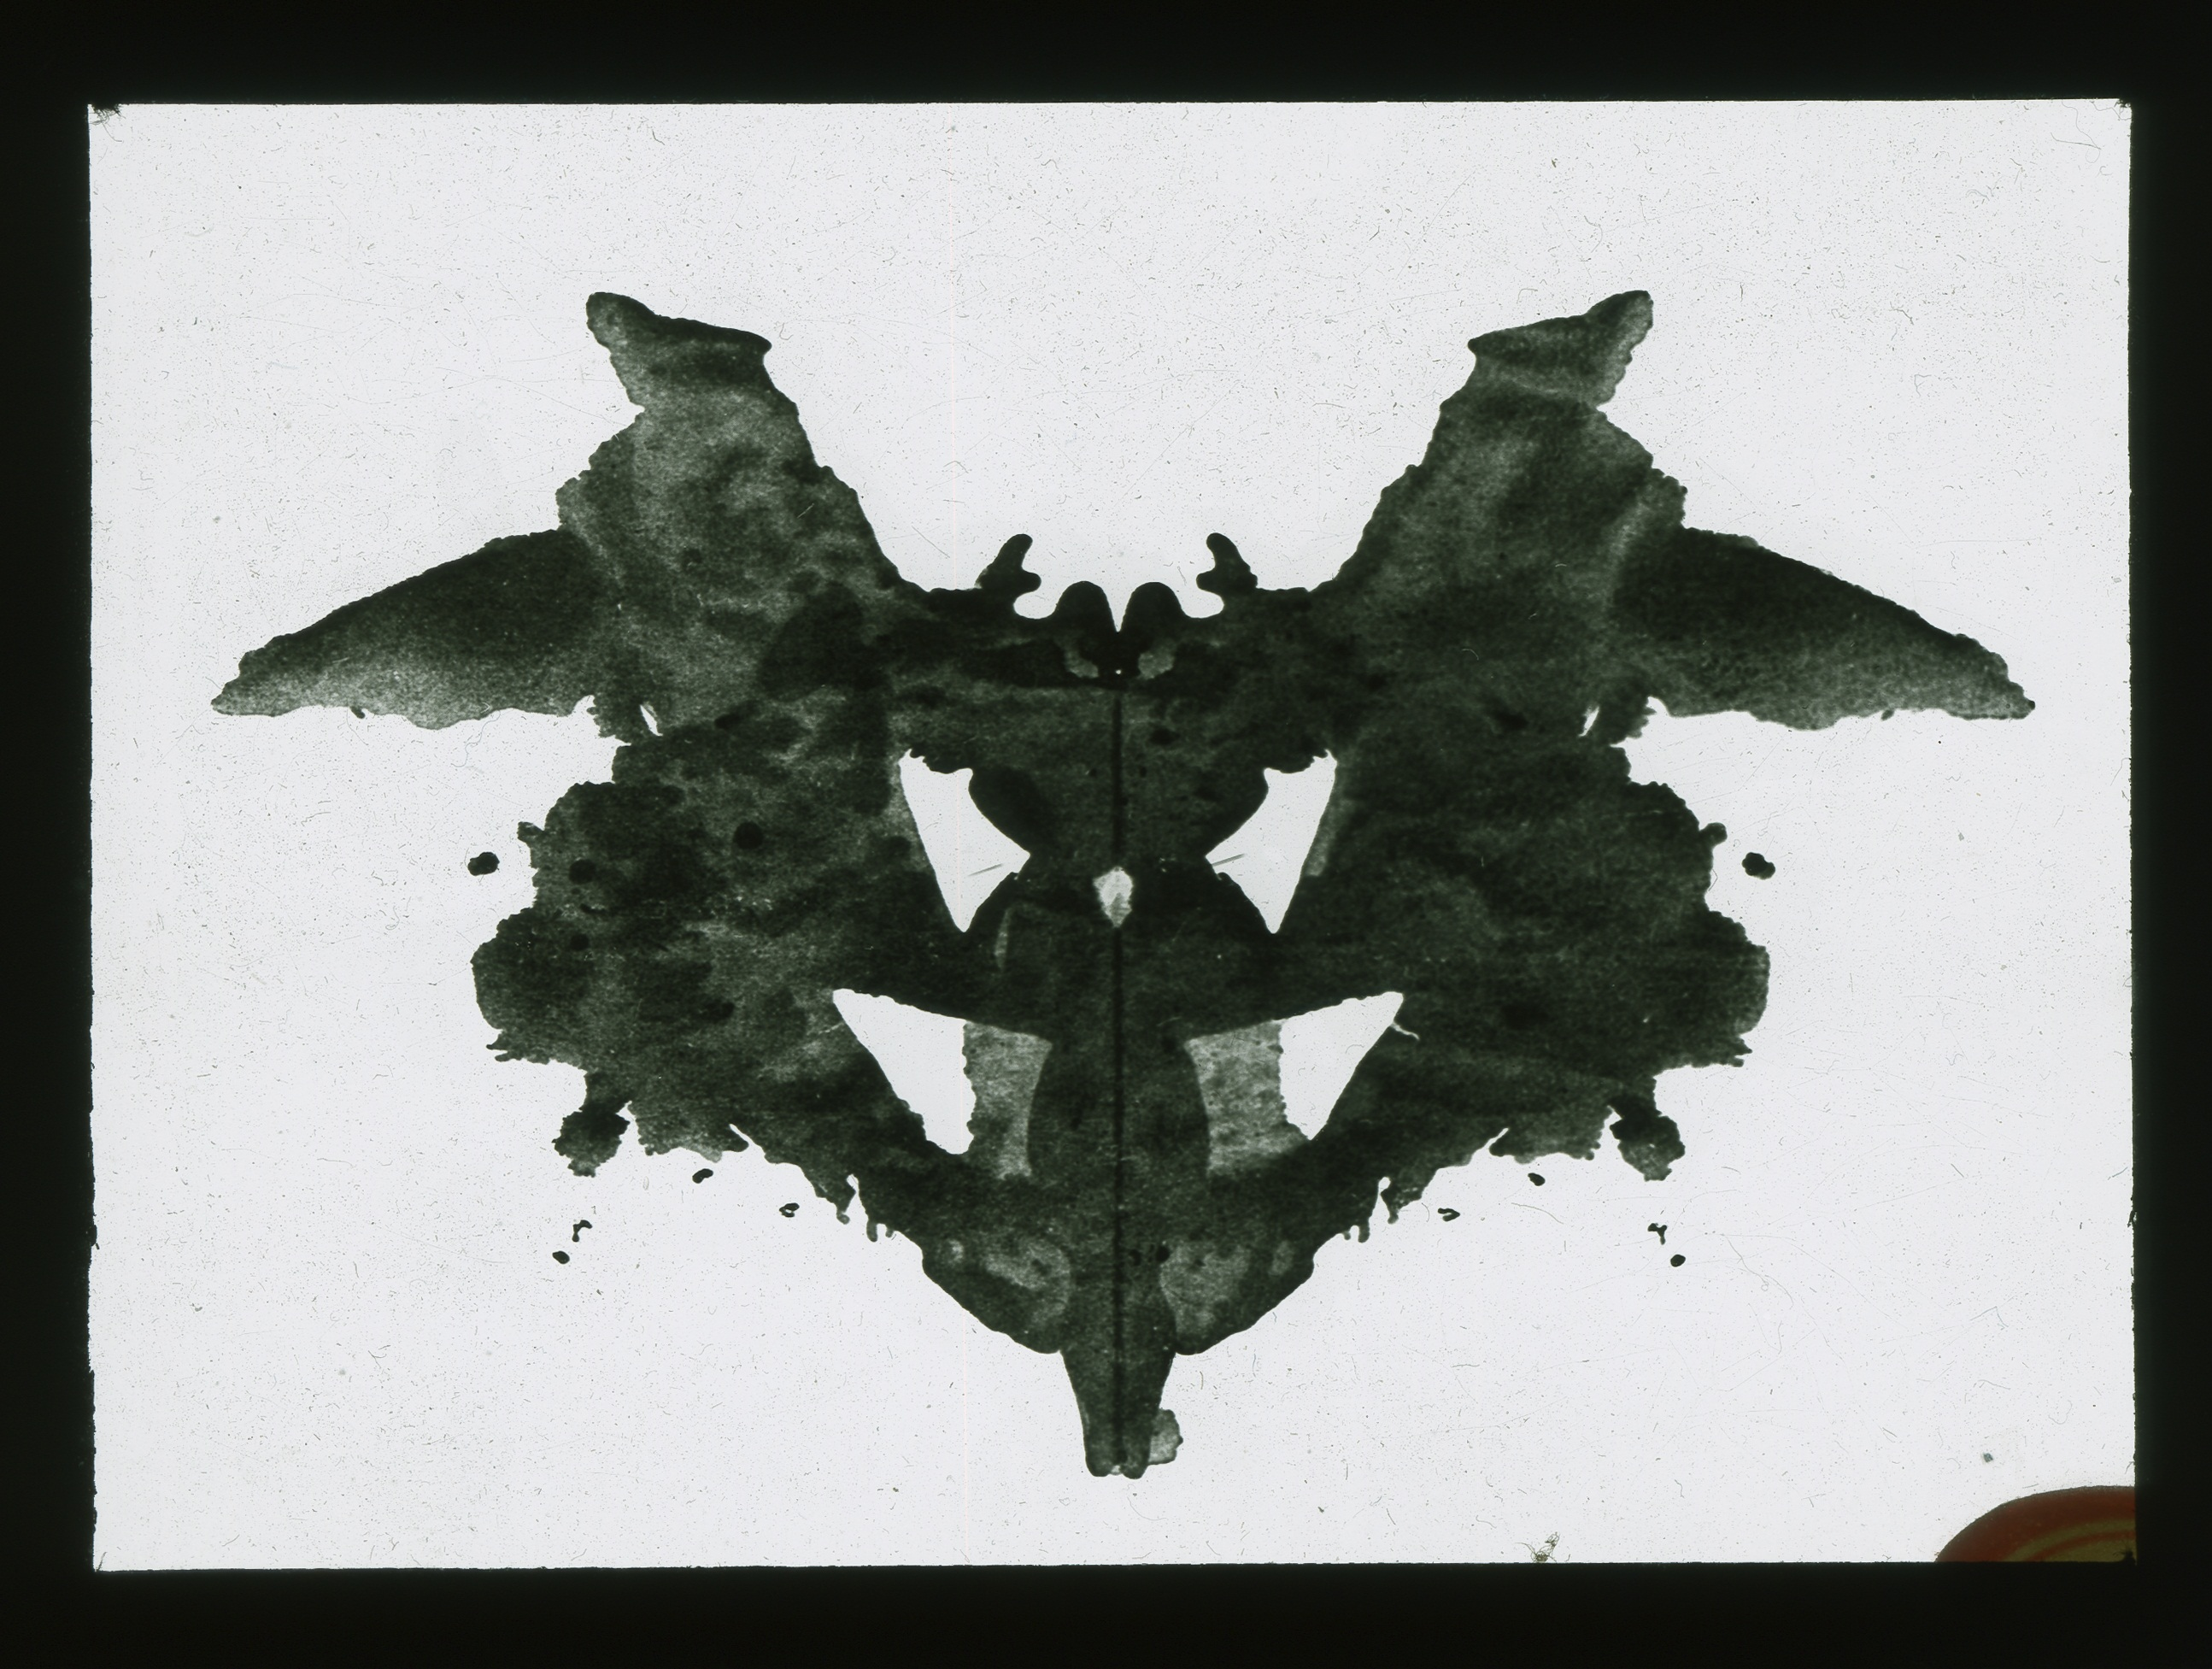 Inkblot test slide